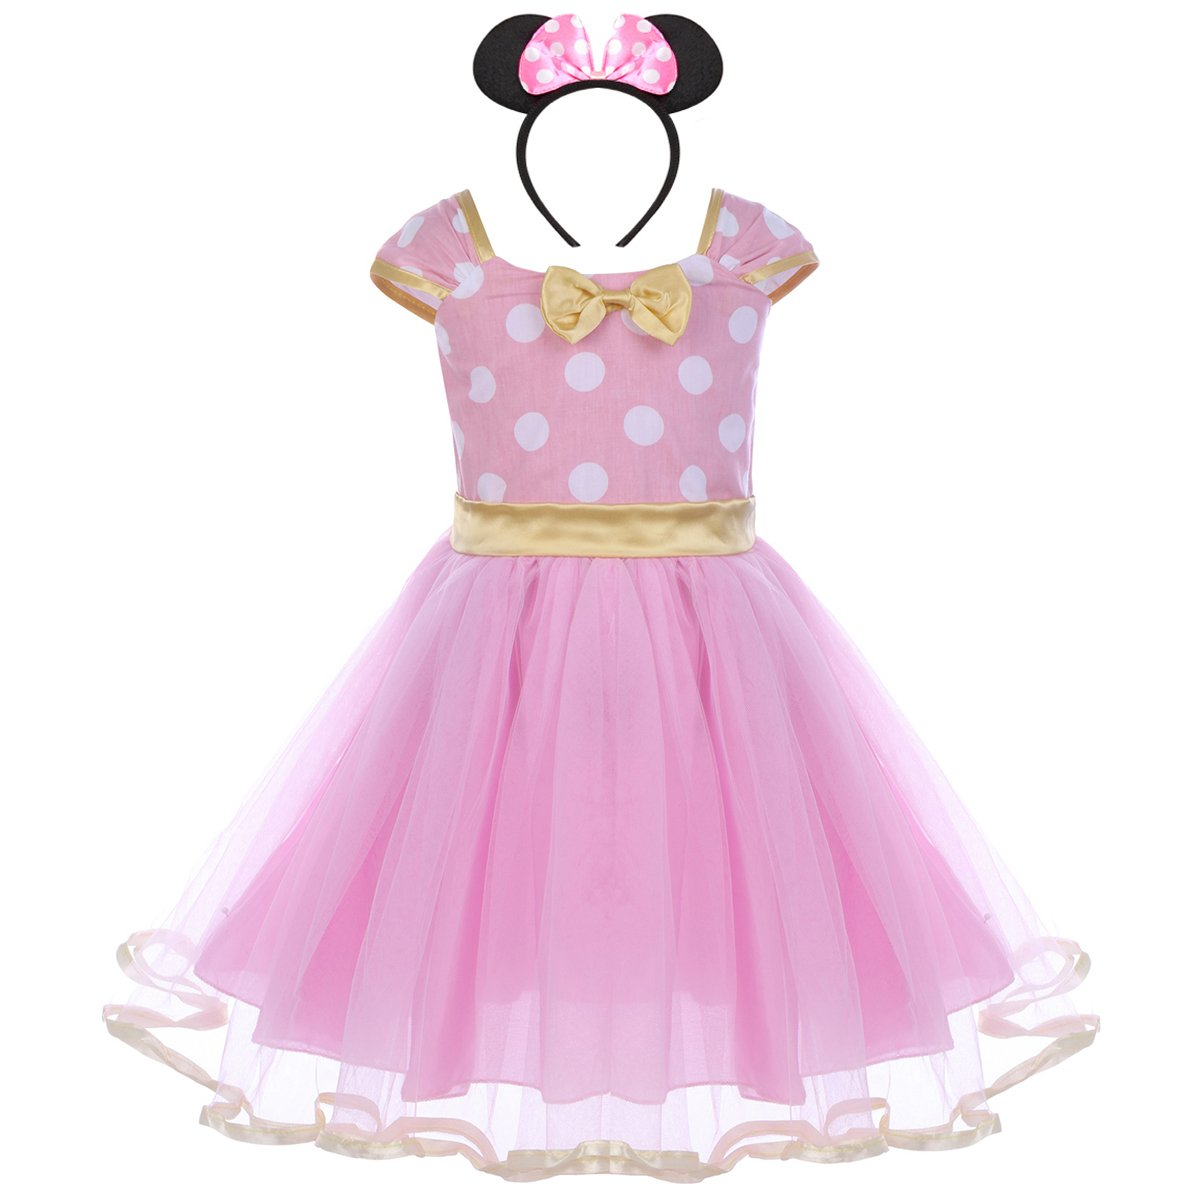 IBTOM CASTLE Girls' Minnie Polka Dots Birthday Princess Party Dress Clothes